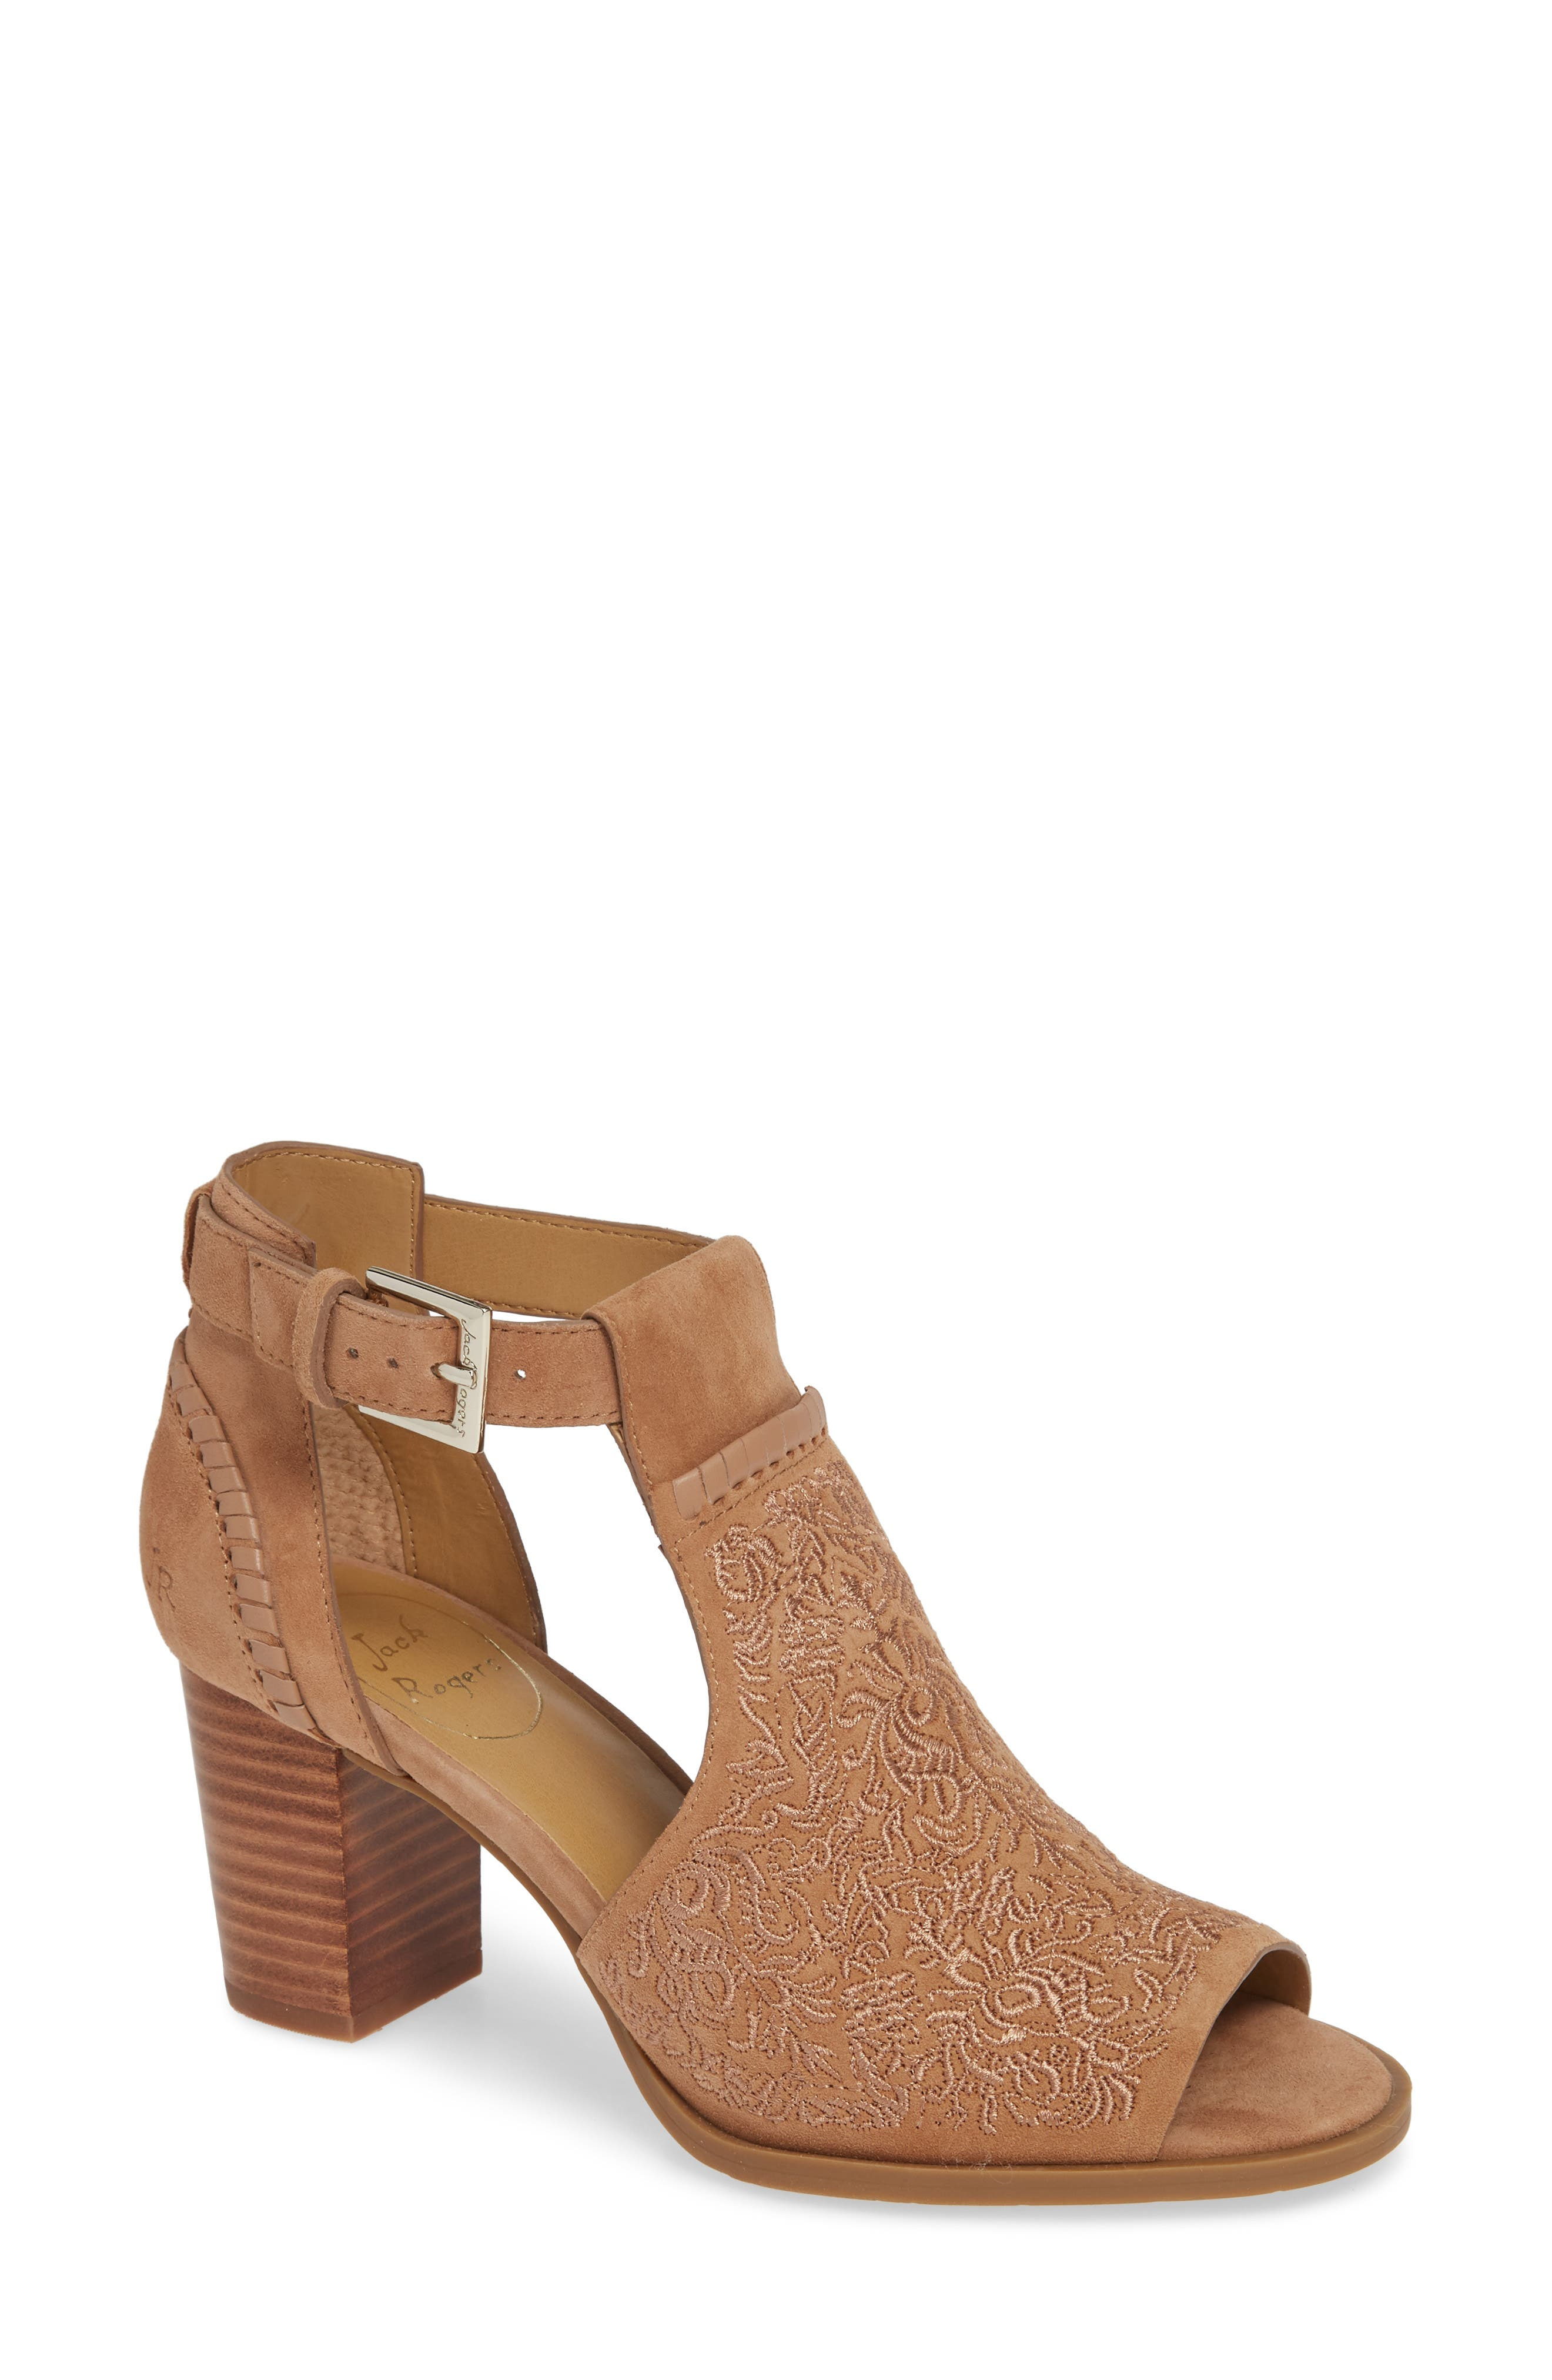 Cameron Block Heel Sandal,                         Main,                         color, BROWN SUEDE